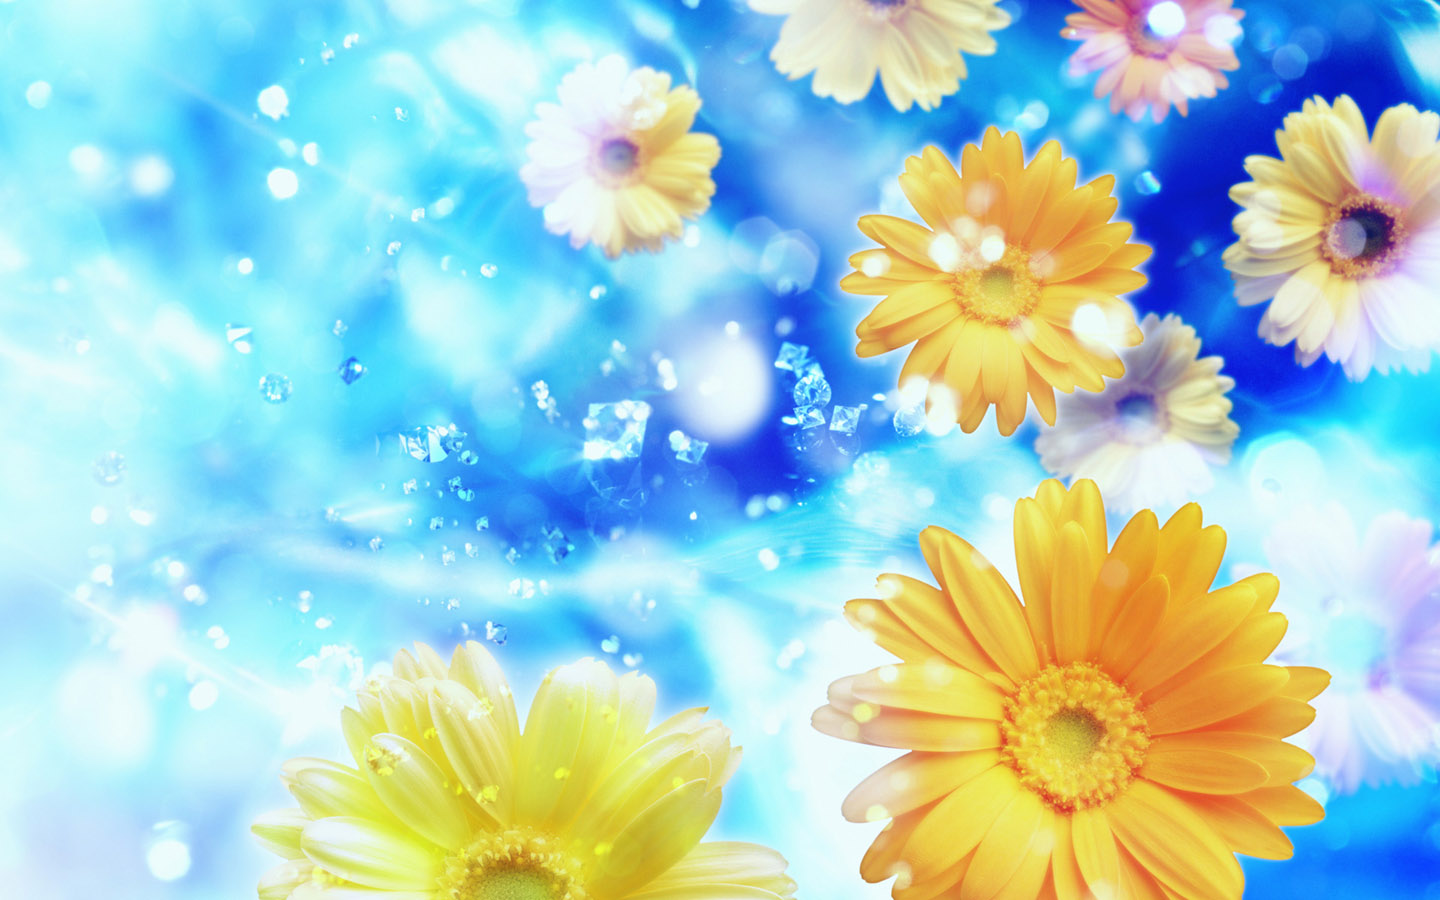 Wallpapers   HD Desktop Wallpapers Online Flower Wallpapers 1440x900